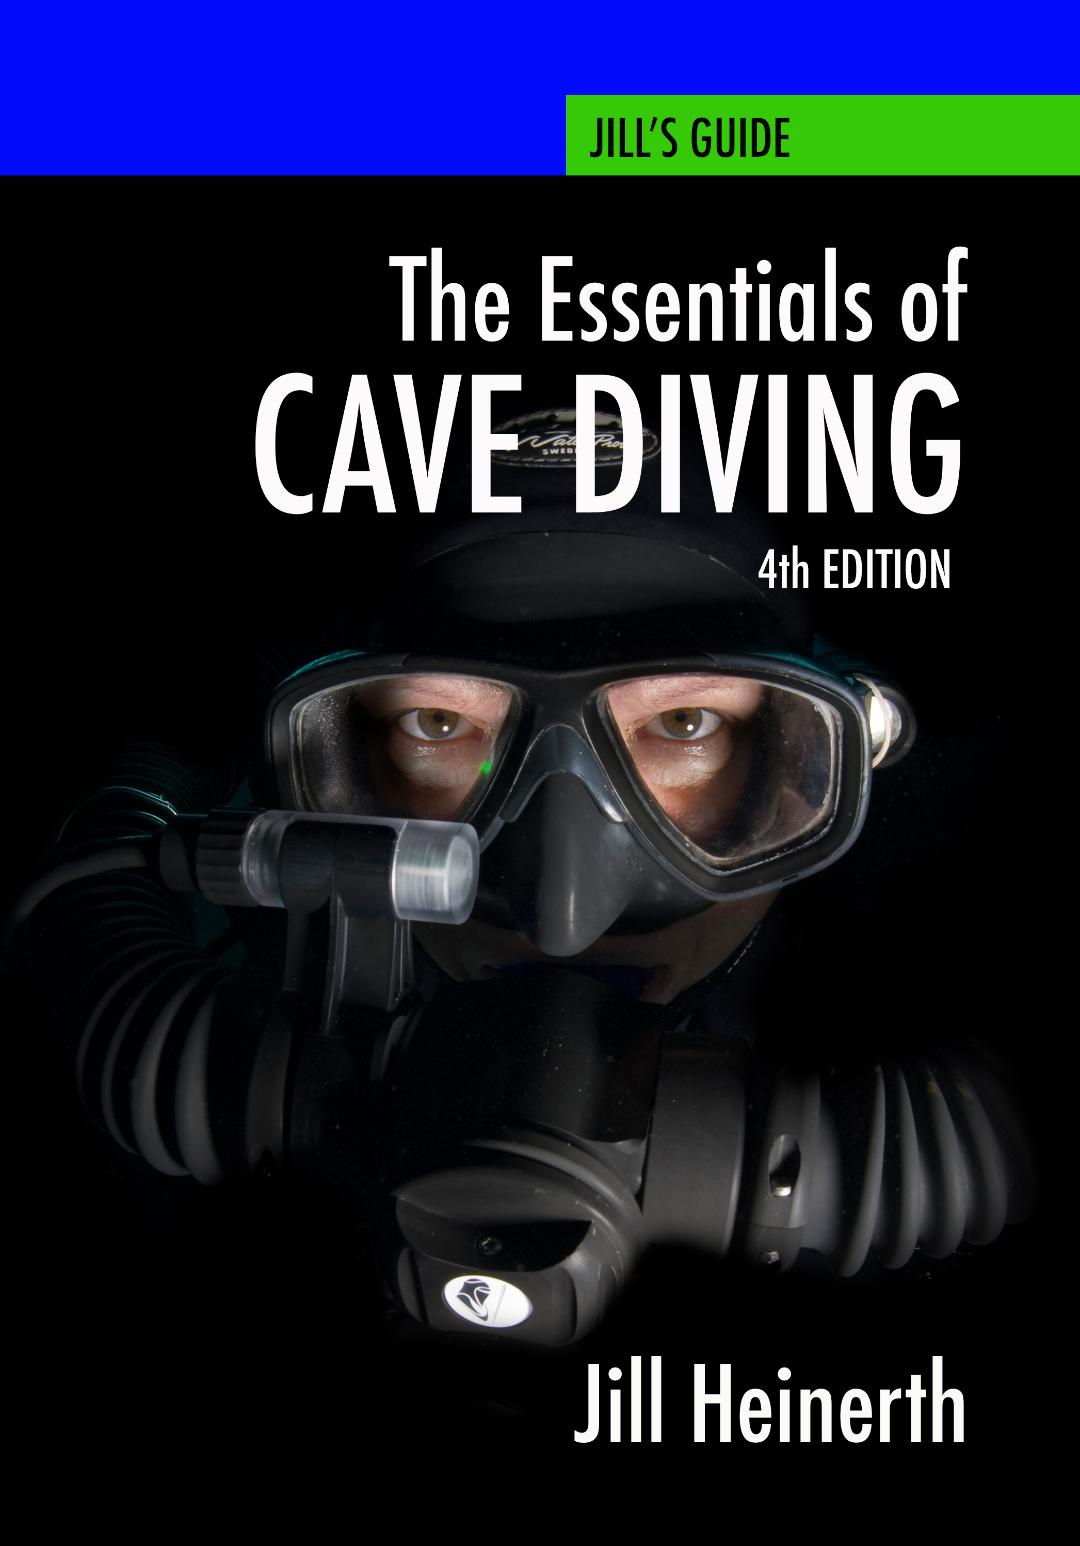 The Essentials of Cave Diving (softcover book)